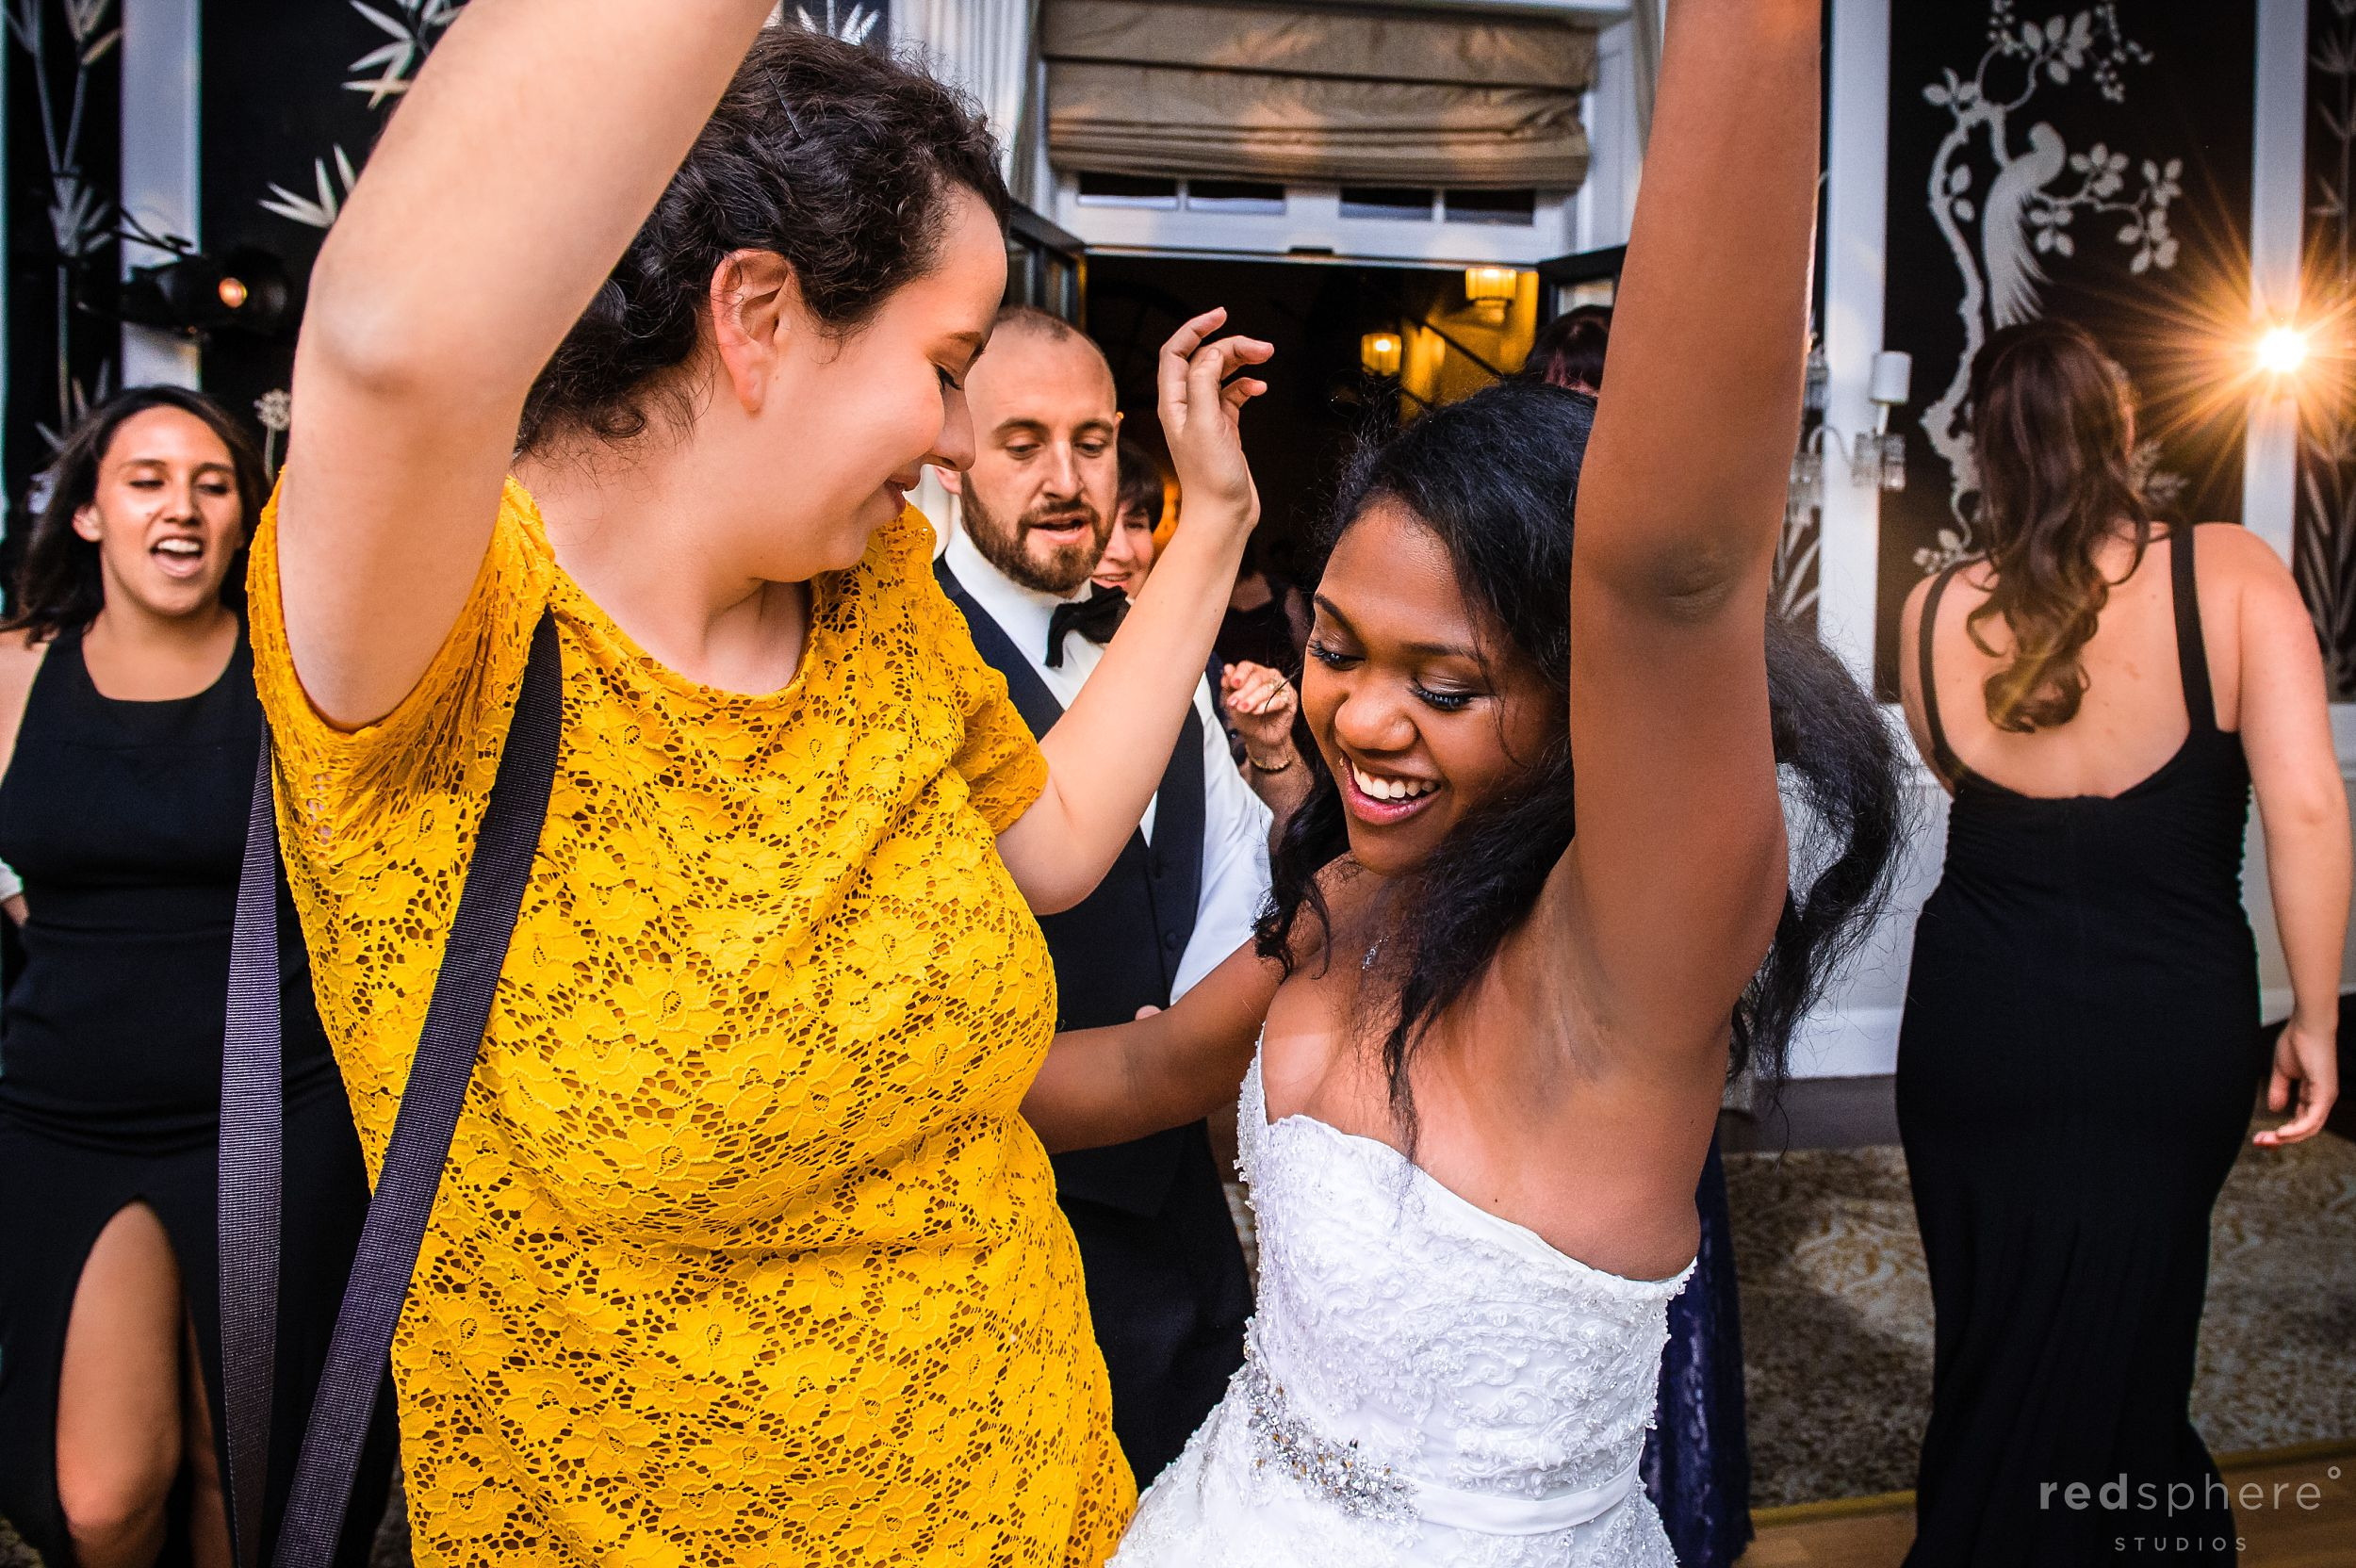 Bride Dances With Guests at Fairmont Hotel Wedding After Party, Candid